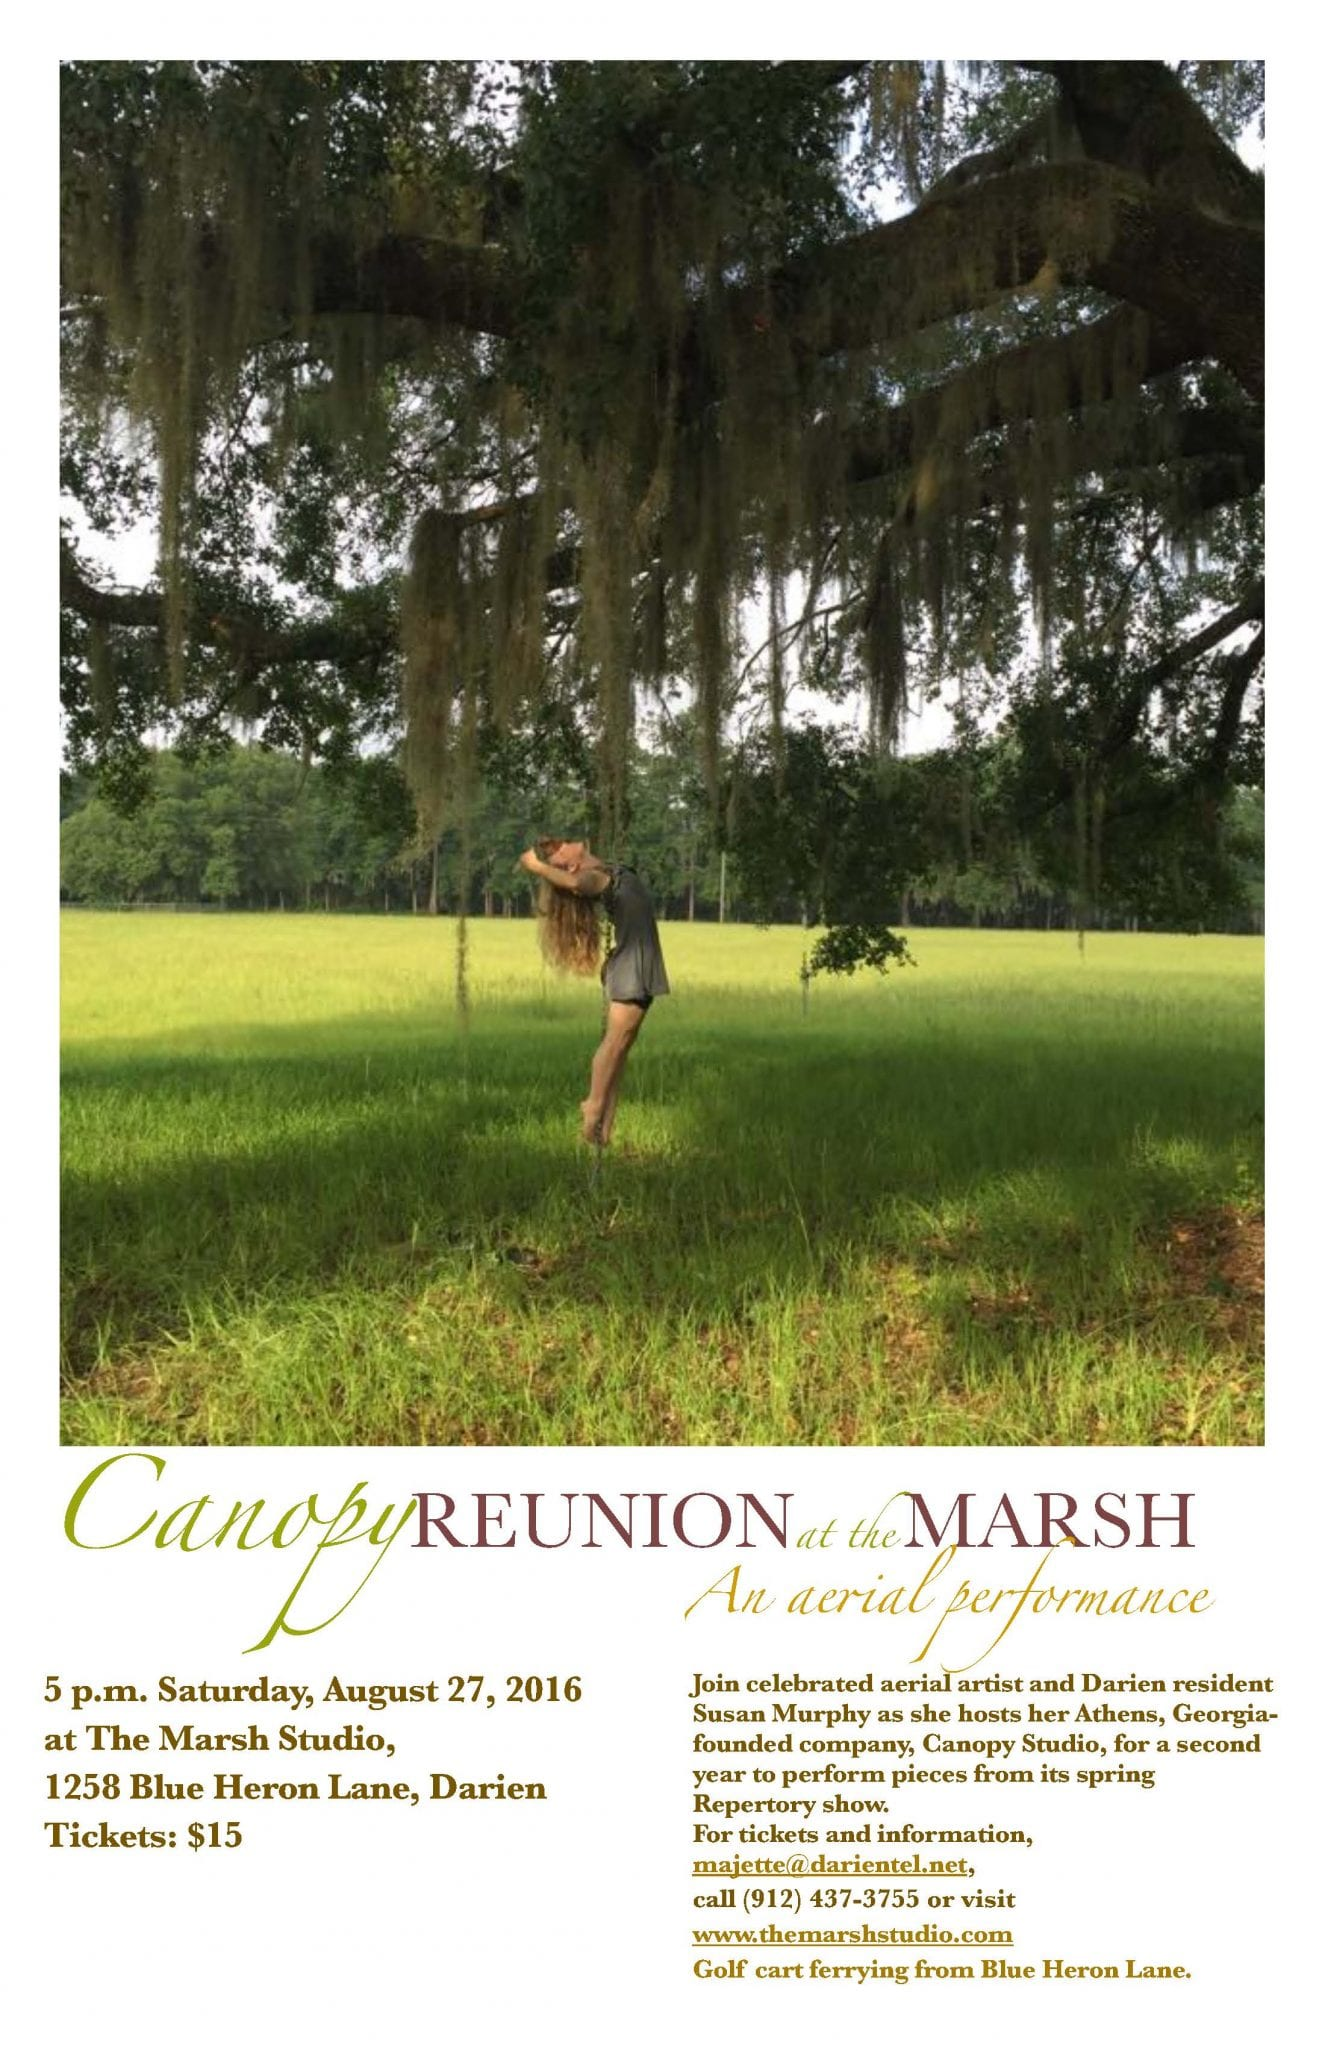 Canopy Reunion at the Marsh